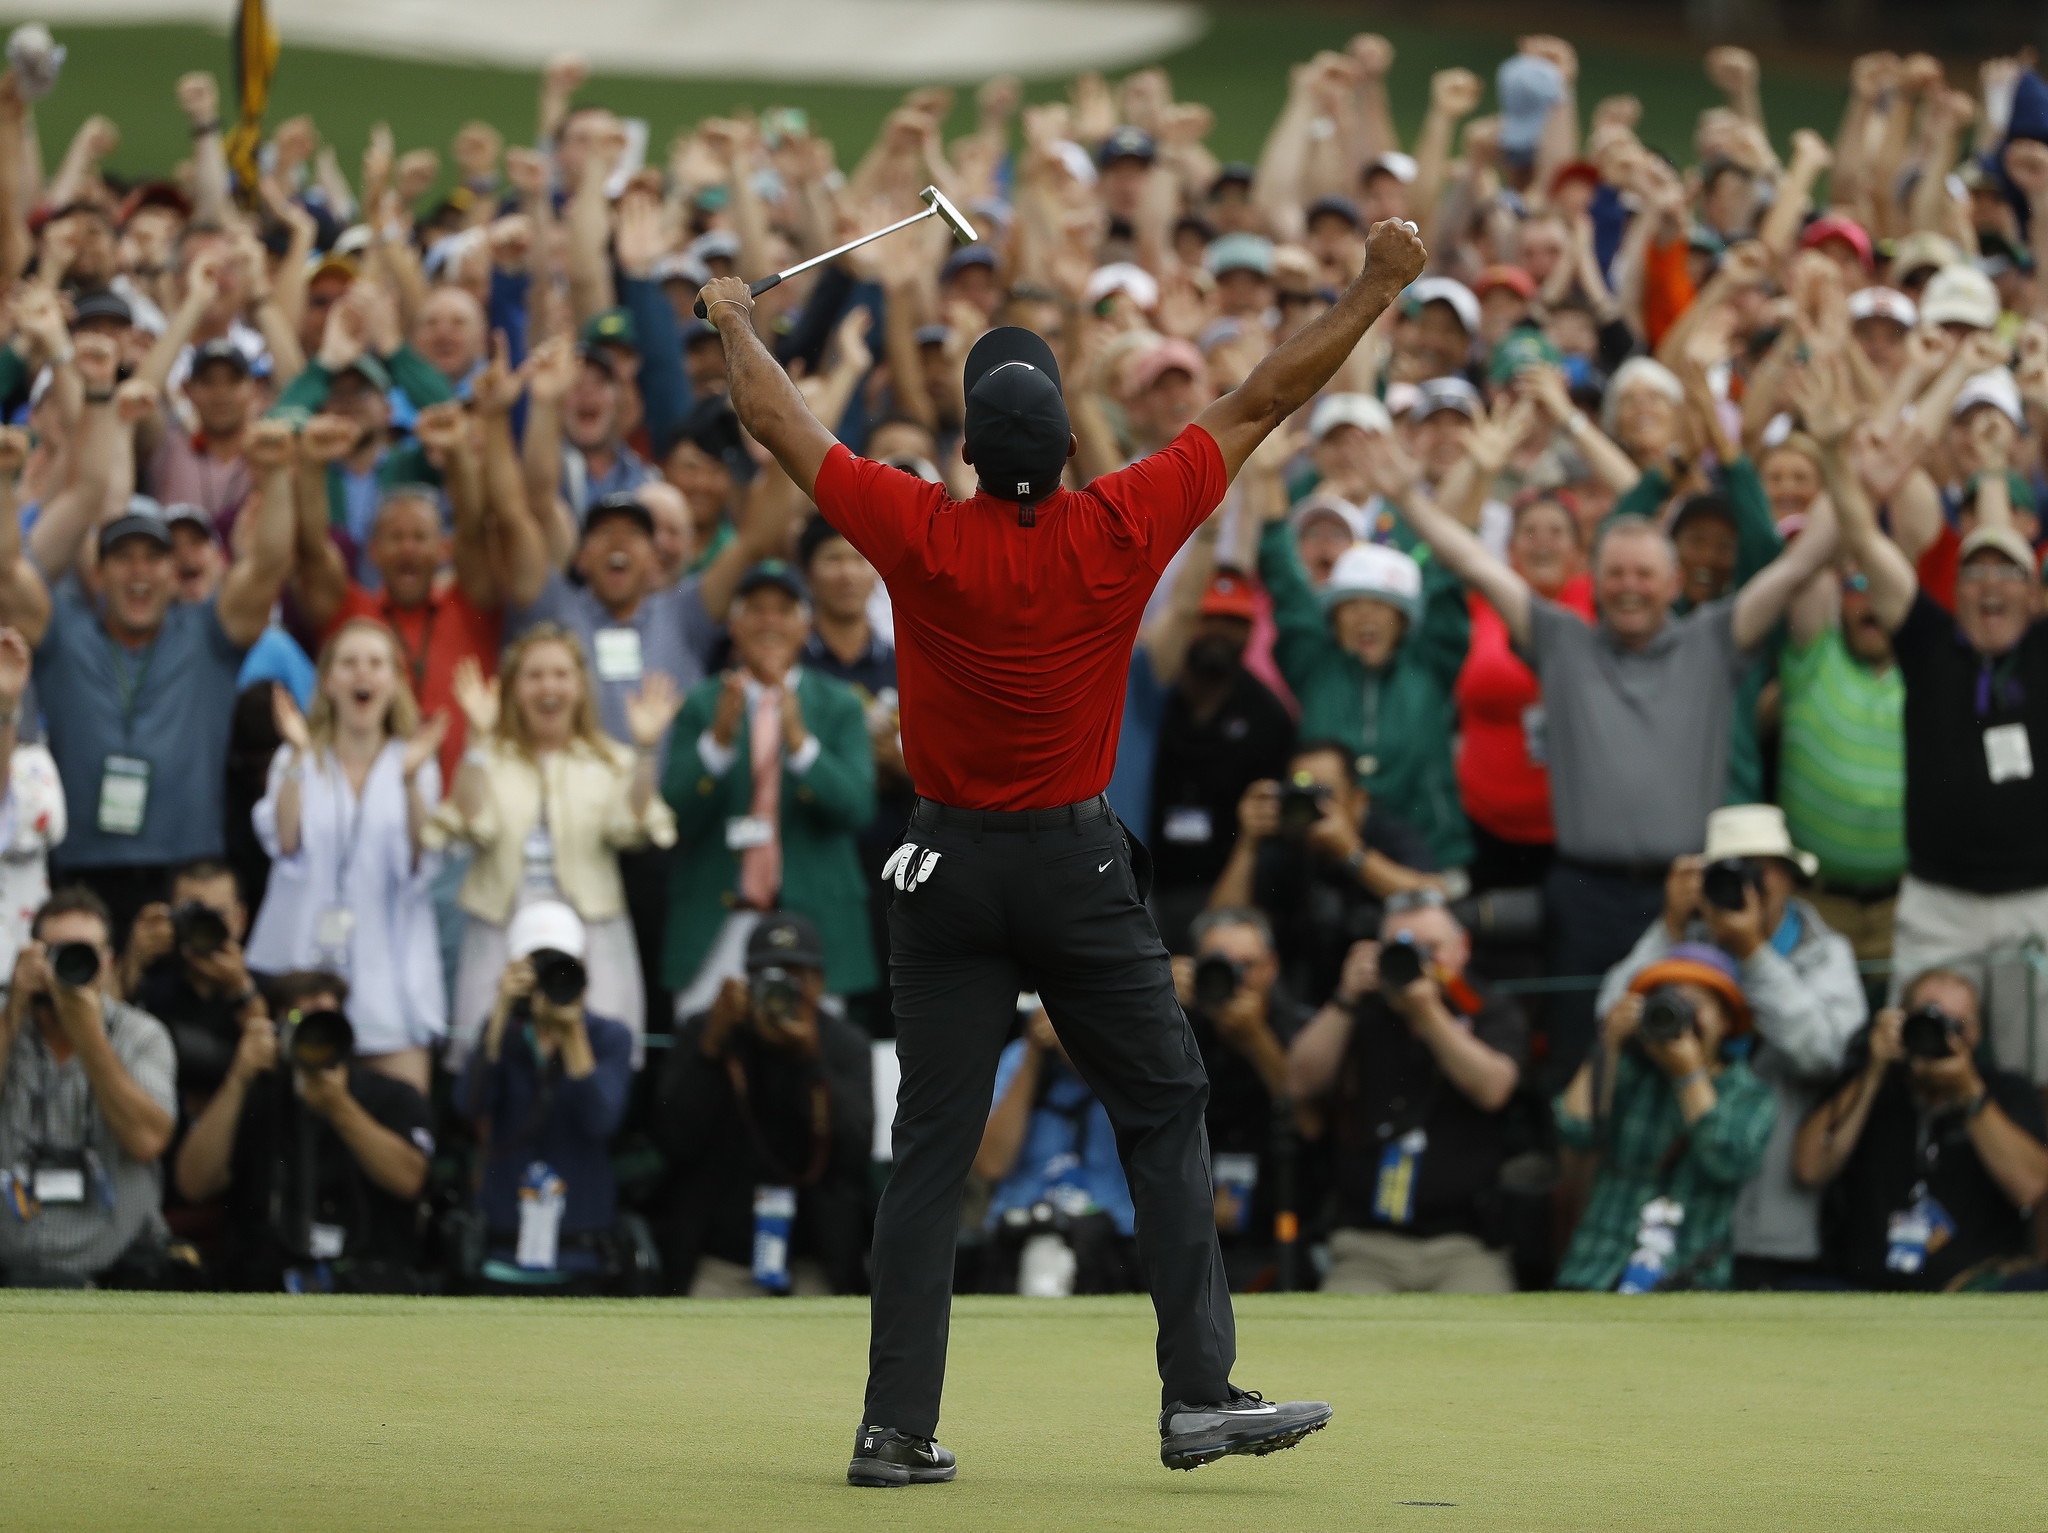 tiger woods wins the 2019 masters tournament